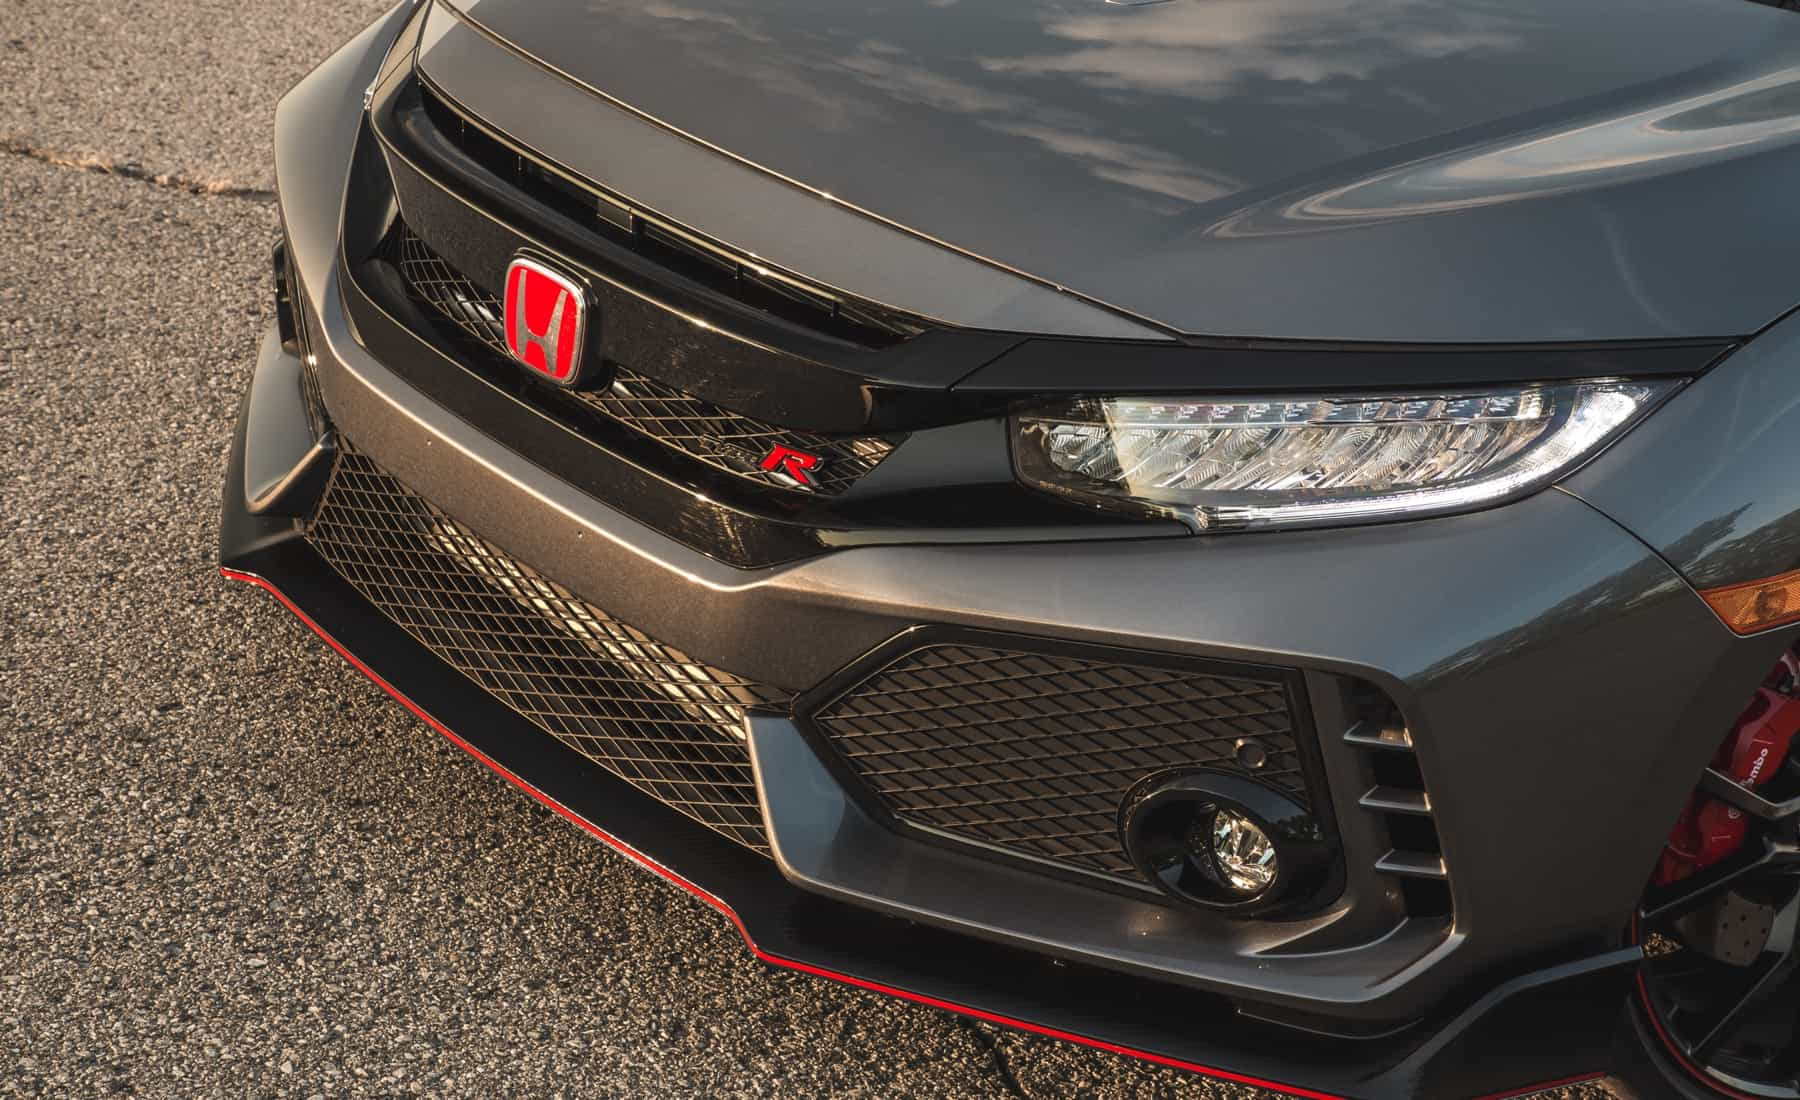 2017 Honda Civic Type R Exterior View Grille And Badge (Photo 36 of 48)